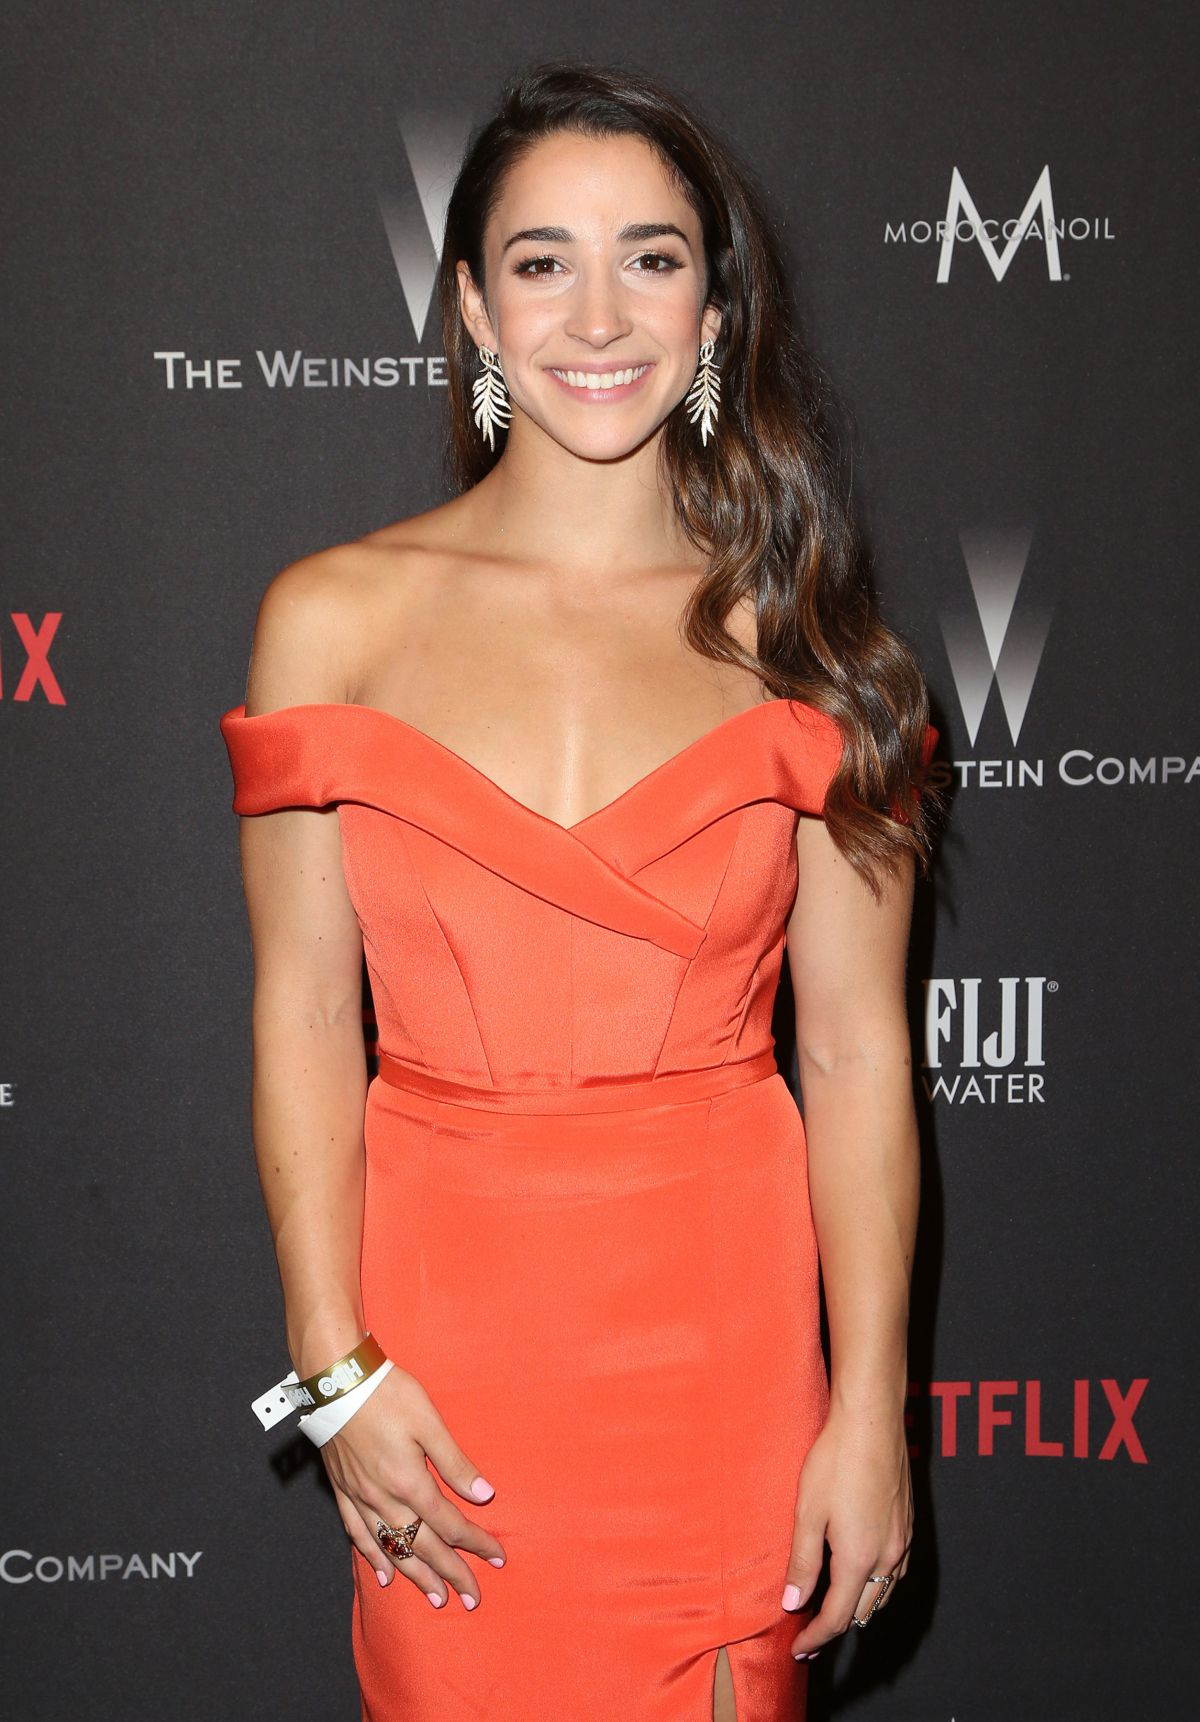 ALY RAISMAN at Weinstein Company and Netflix Golden Globe Party in Beverly Hills 01/08/2017